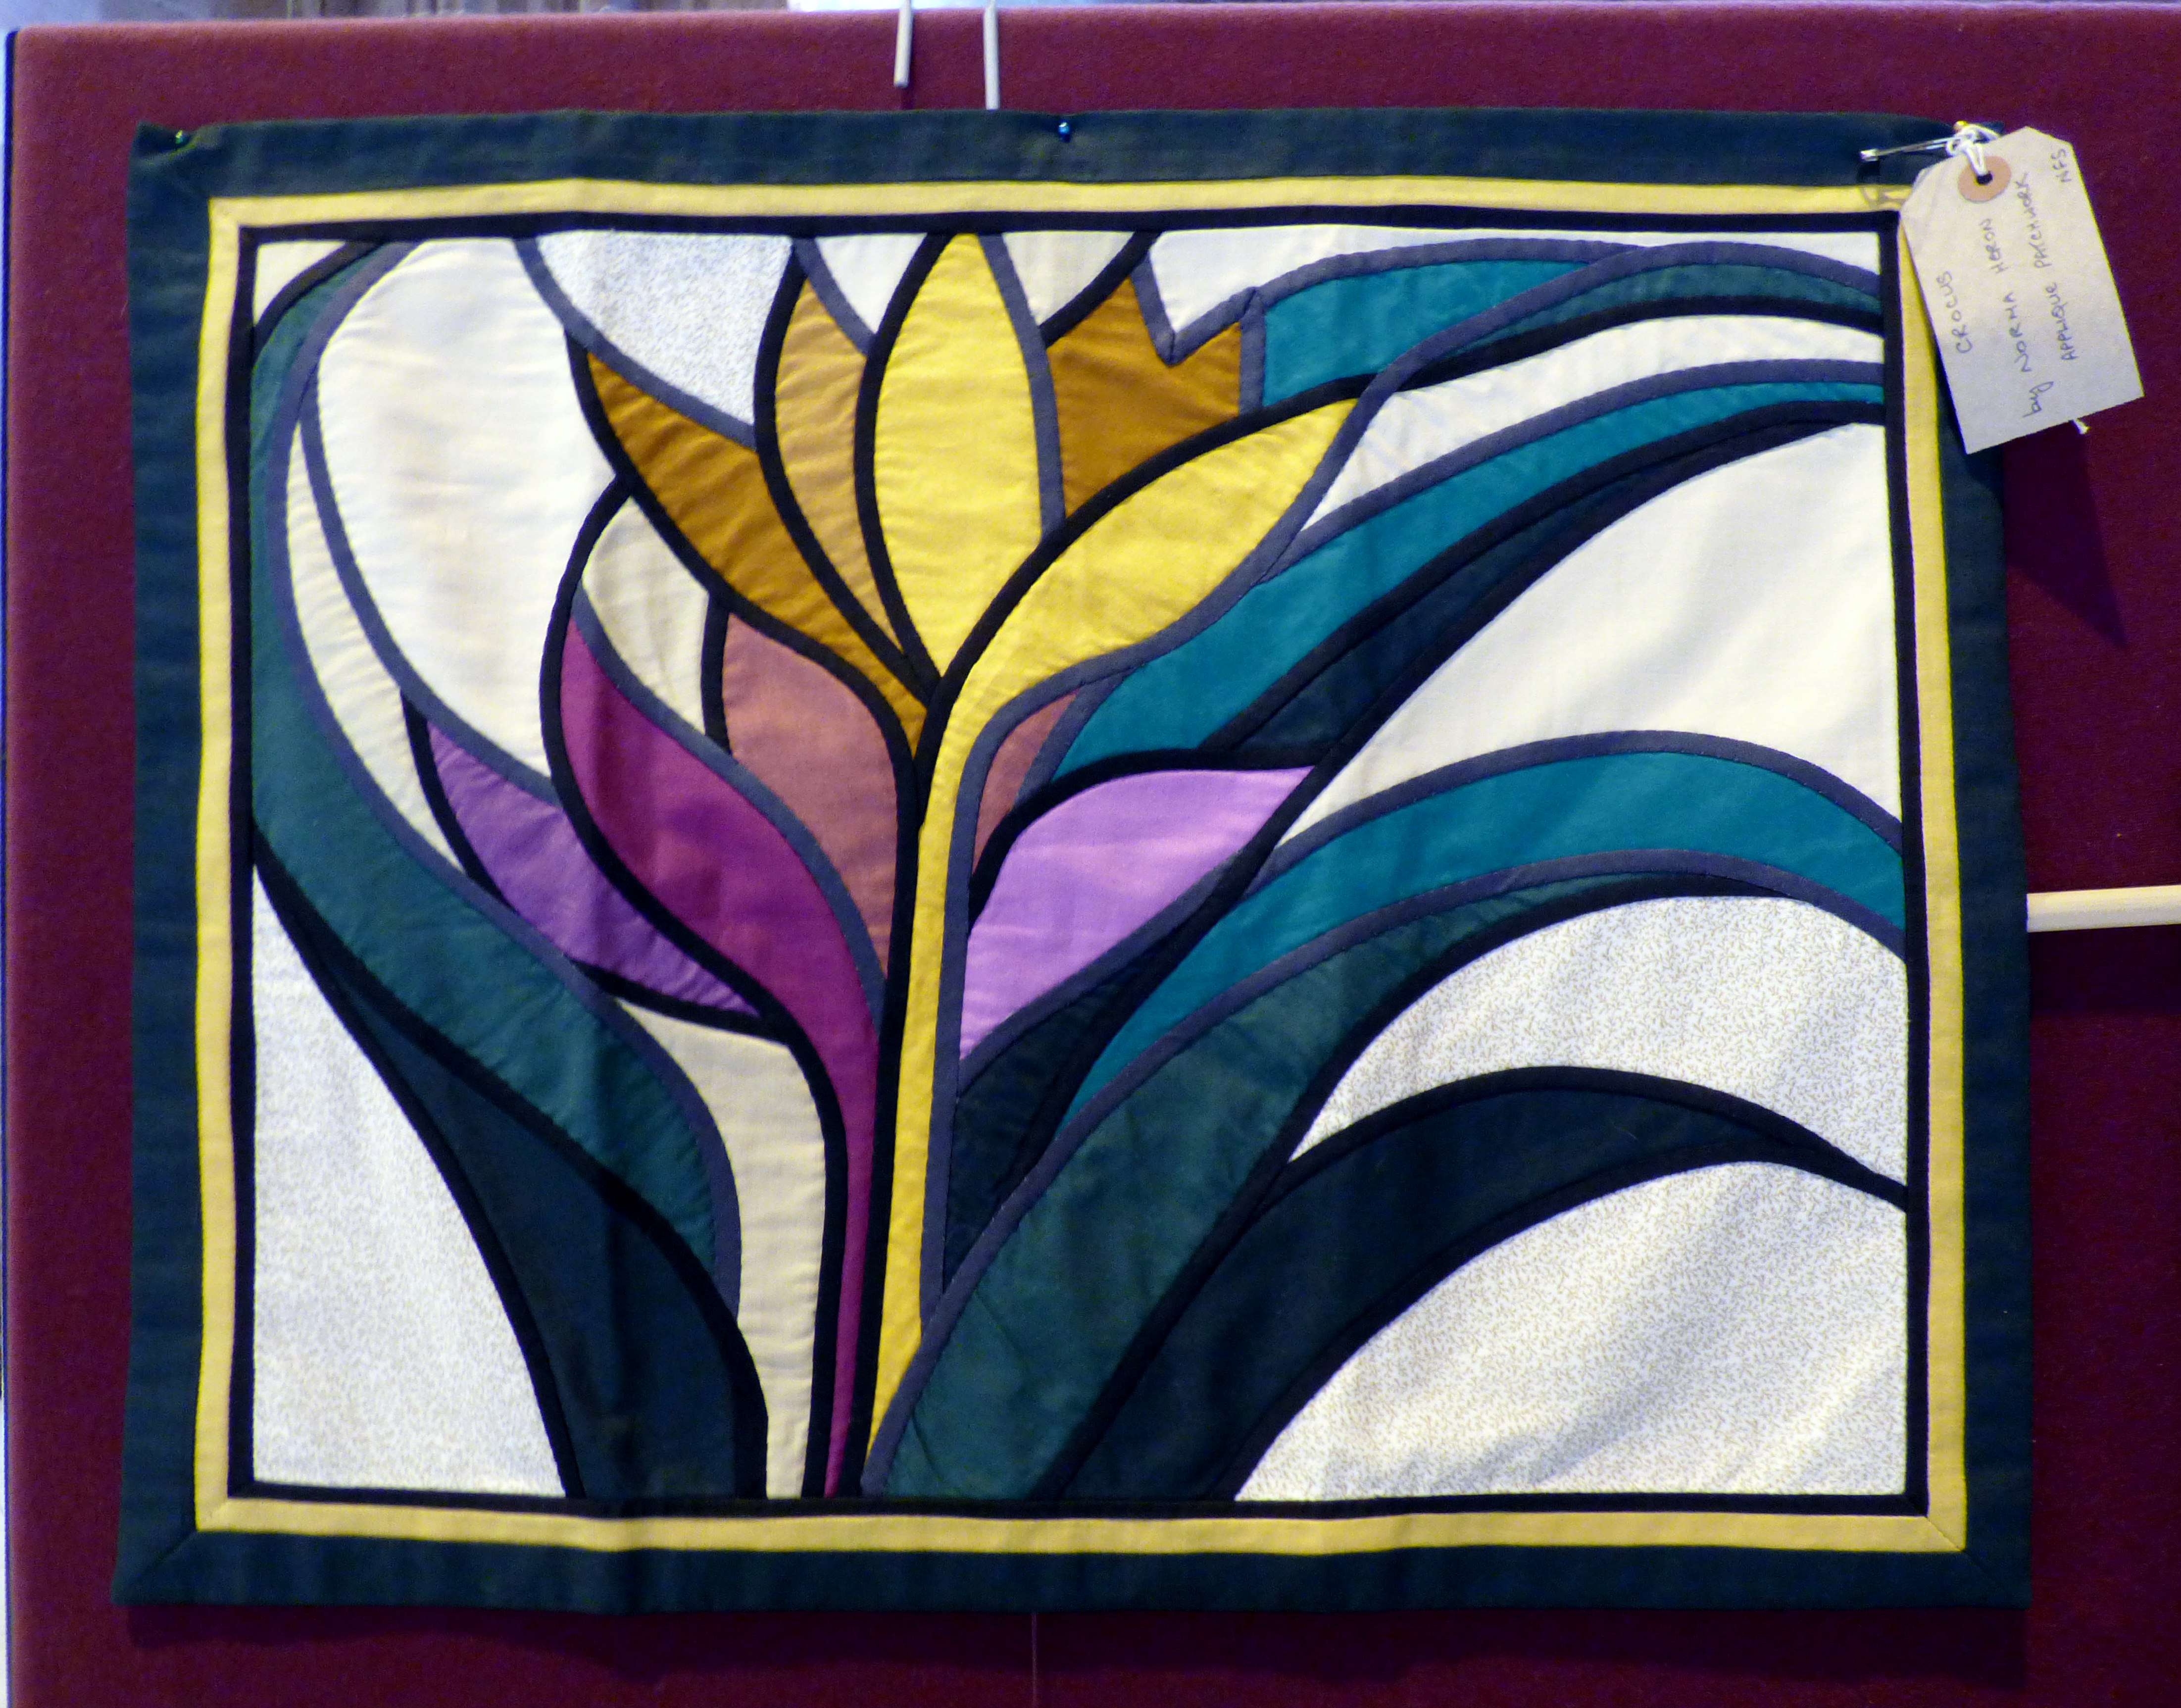 CROCUS by Norma Heron at 60 Glorious Years exhibition 2016